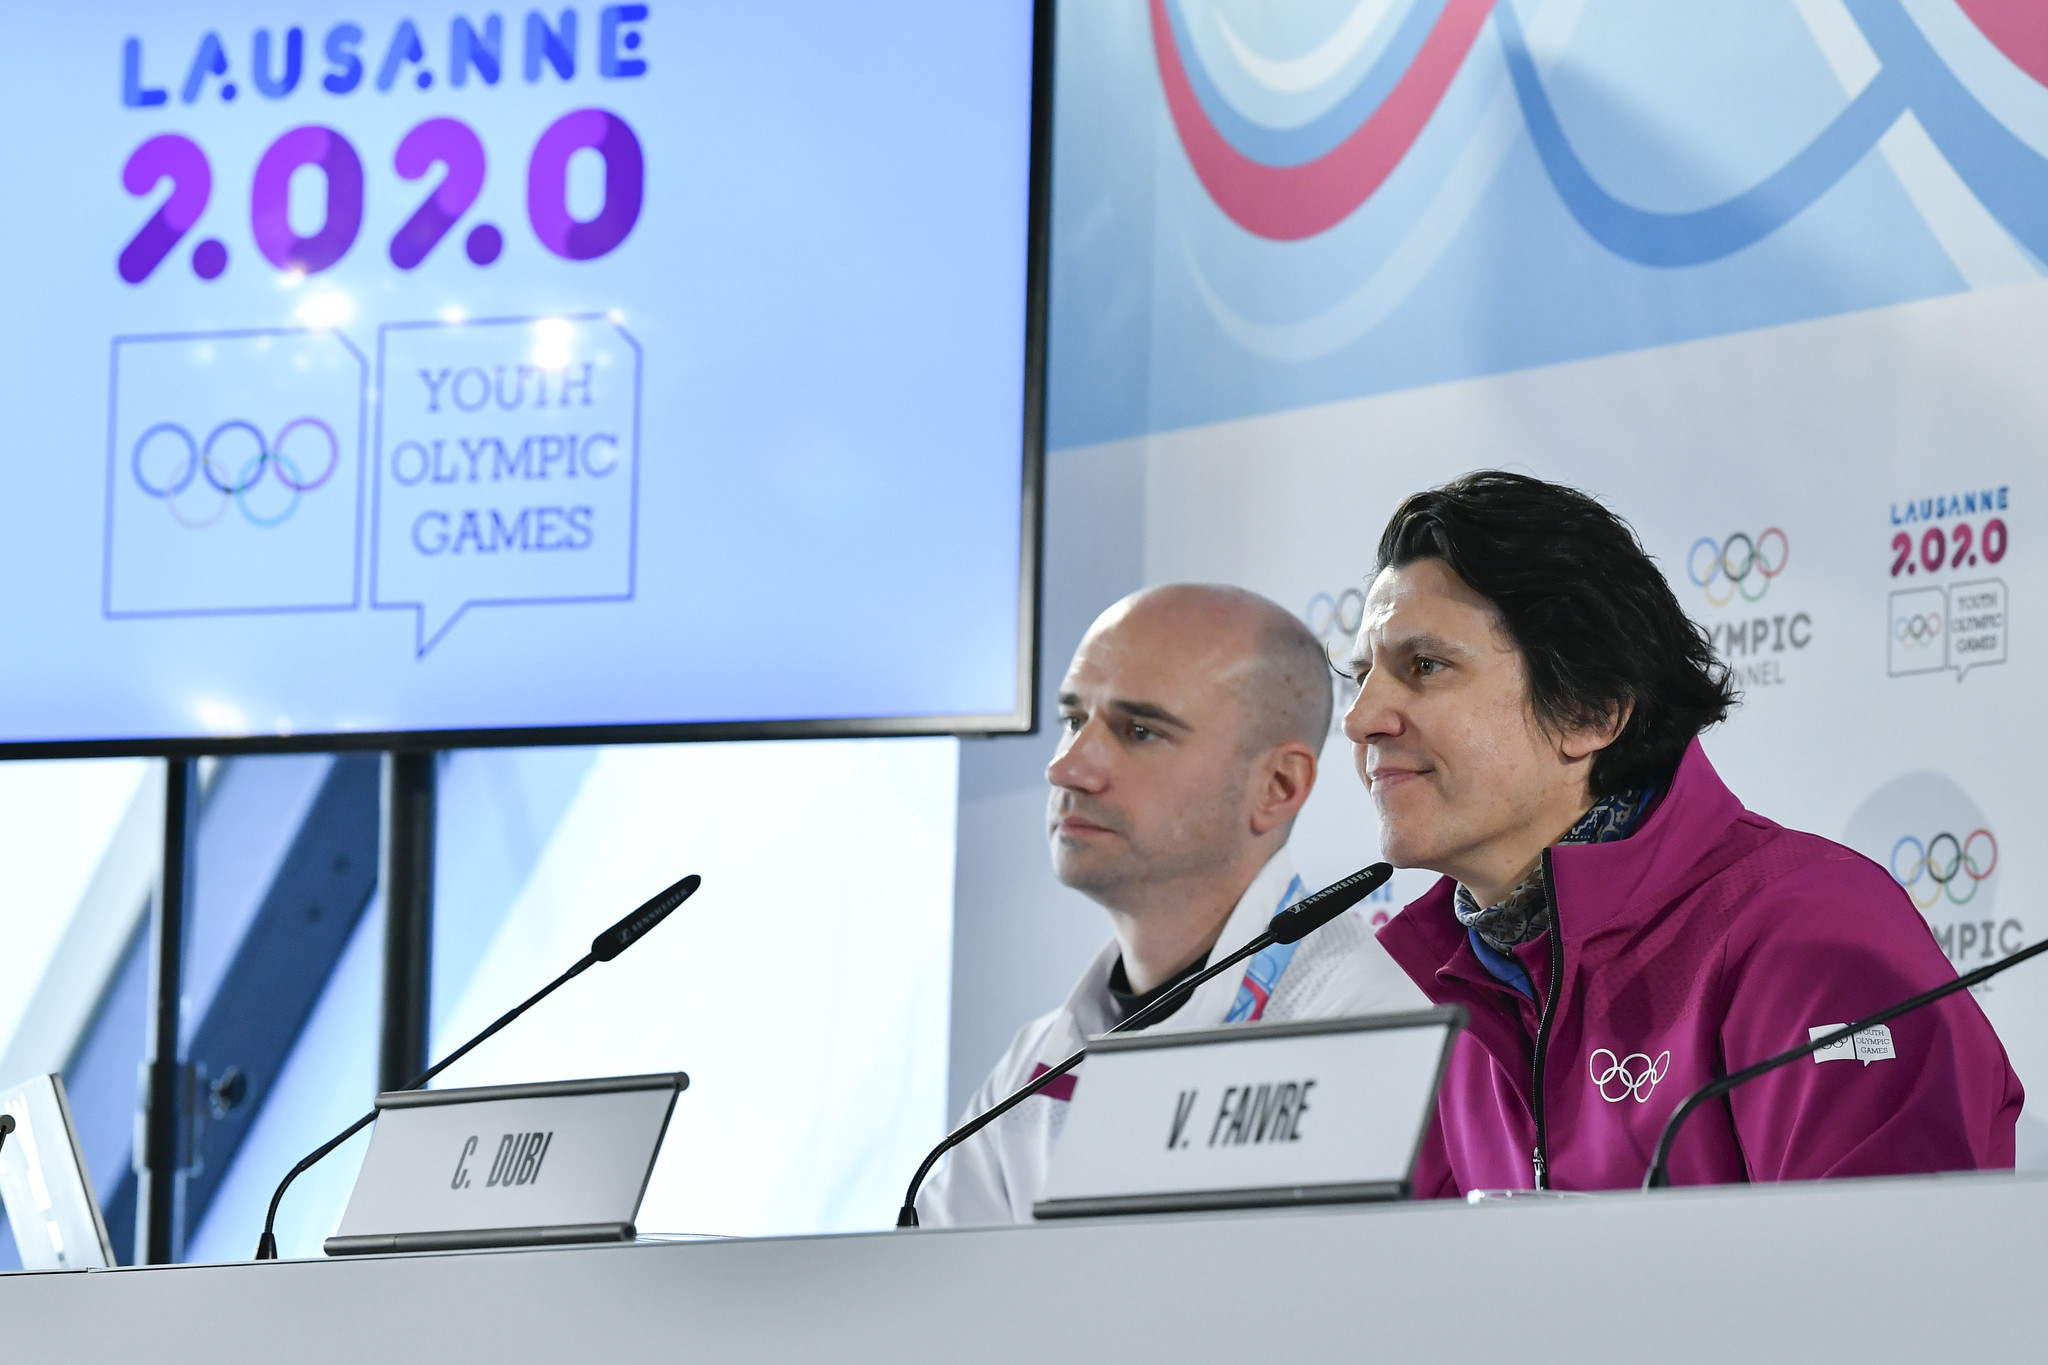 IOC claim open to holding Winter Youth Olympics in new locations